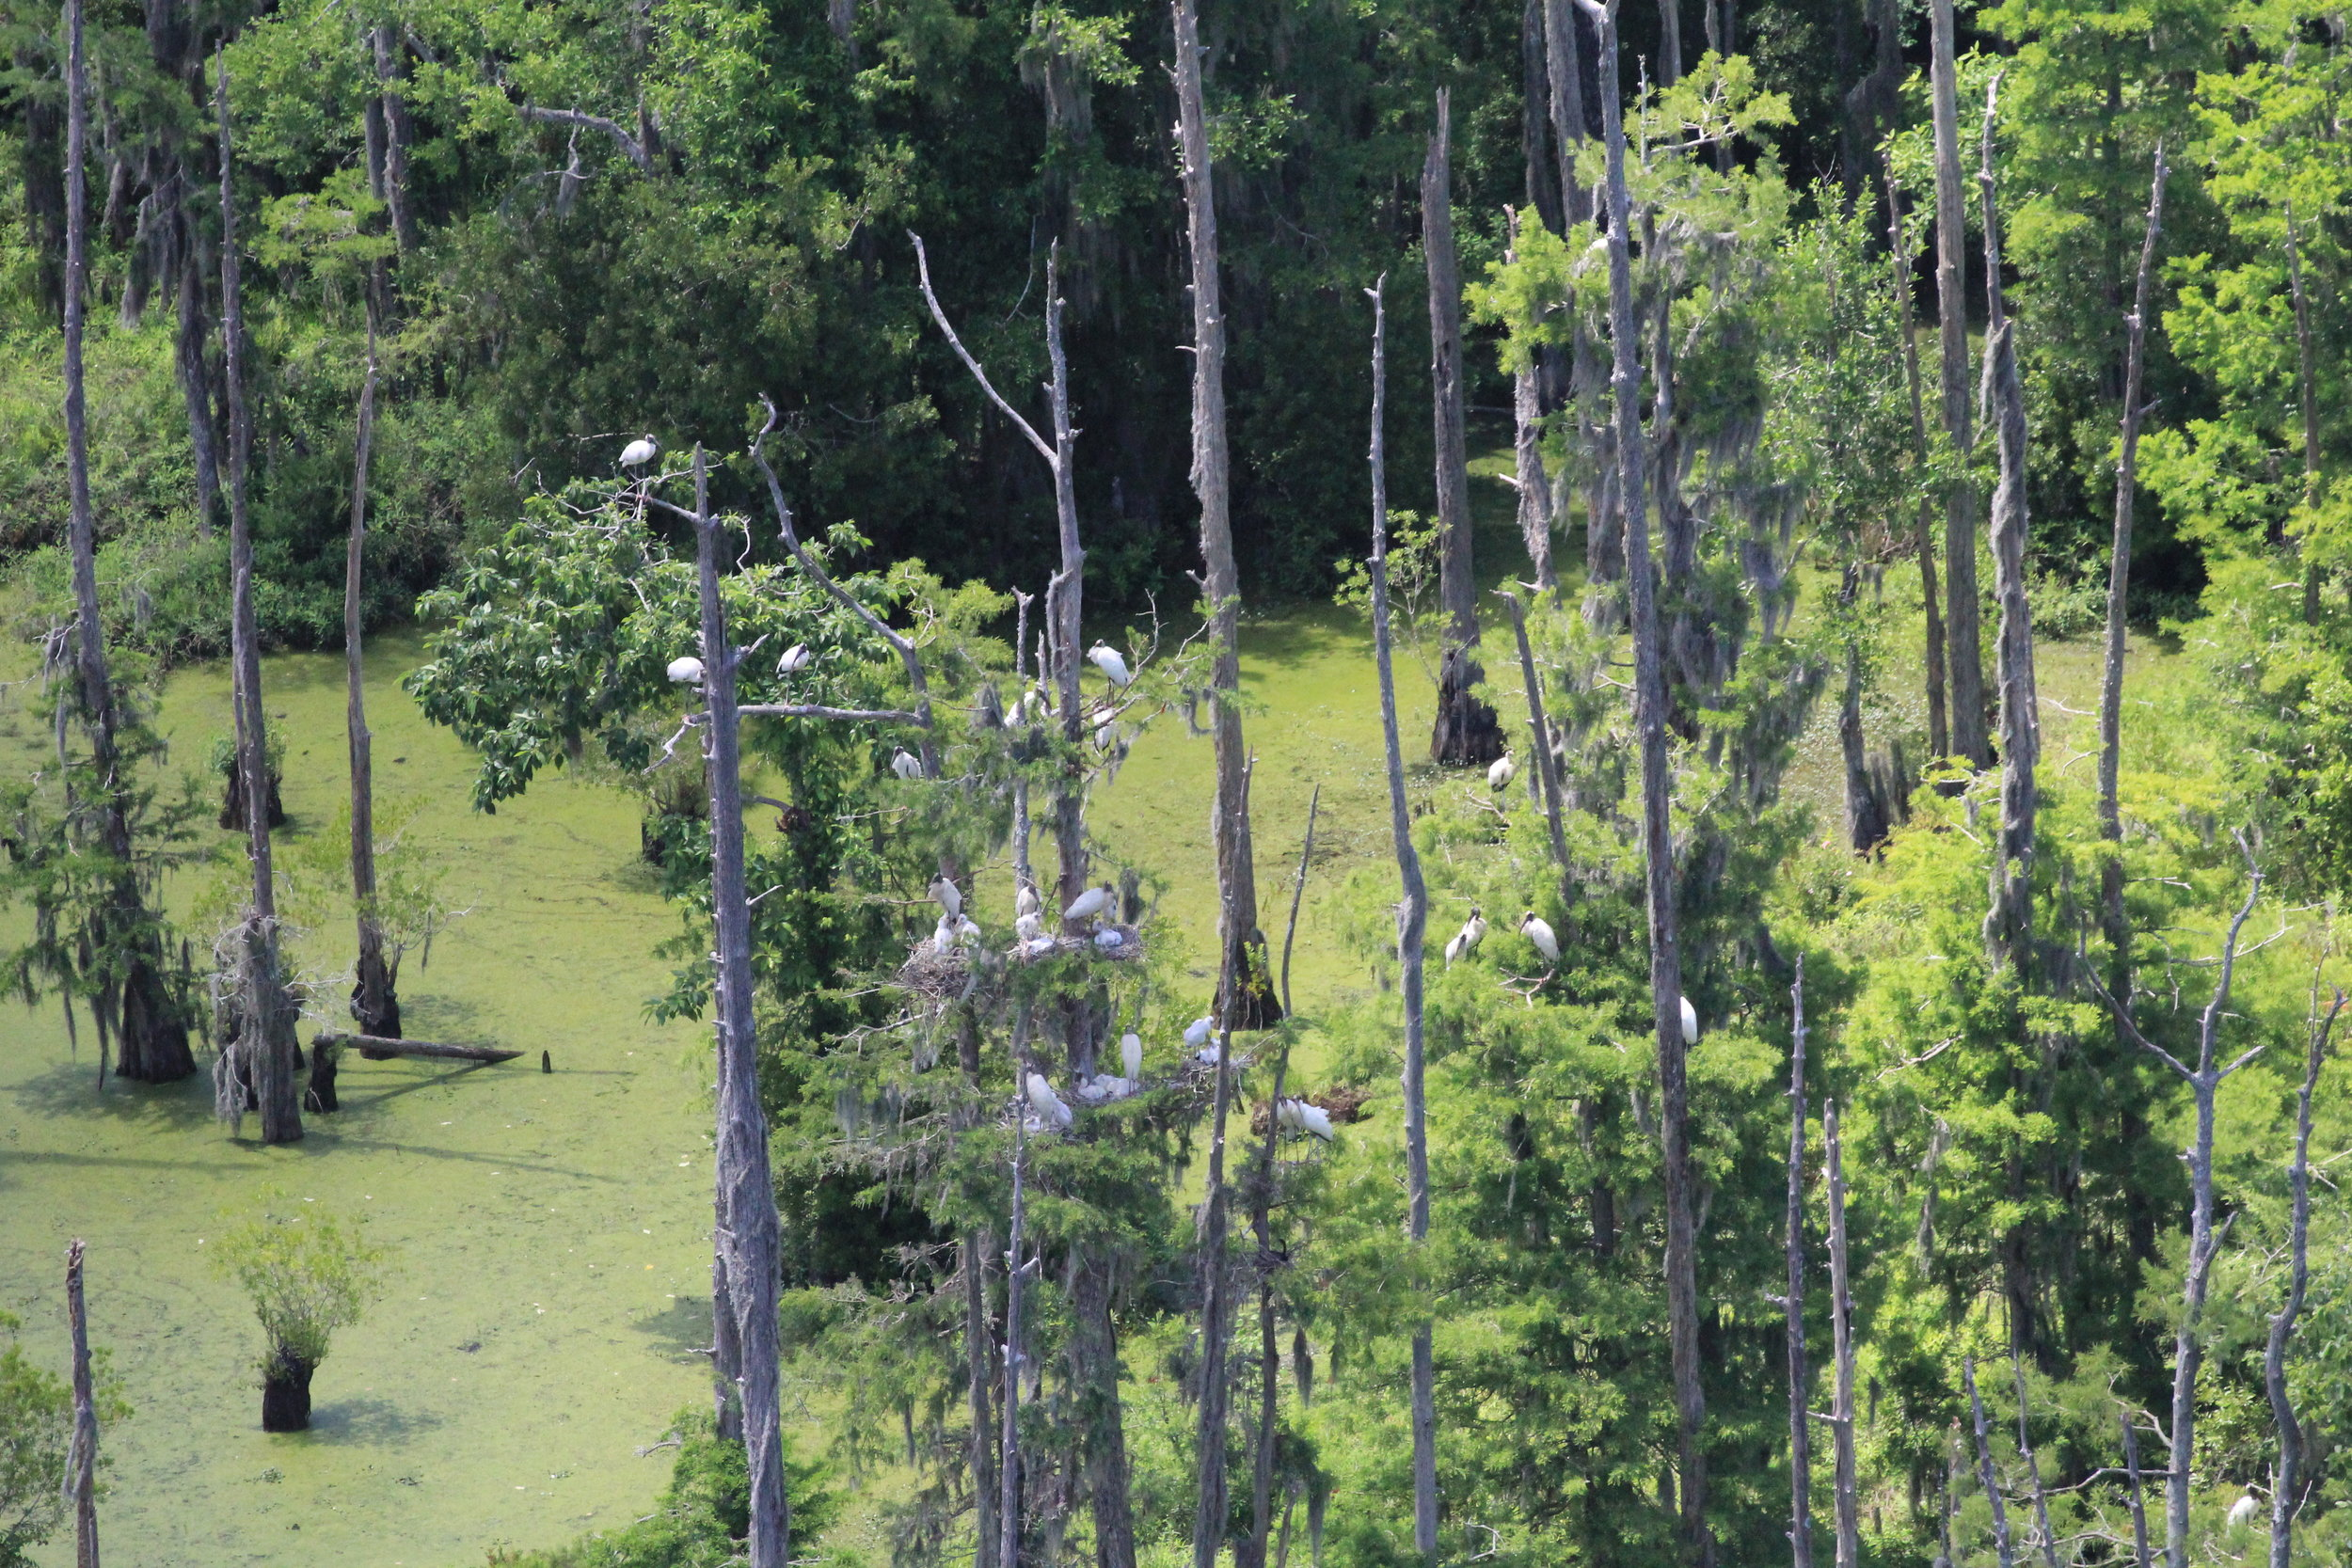 SCDNR pilots and biologists fly at a distance that does not disturb the wood storks they're studying, using long-range lenses to capture closer-up images. (Photo: Christy Hand)